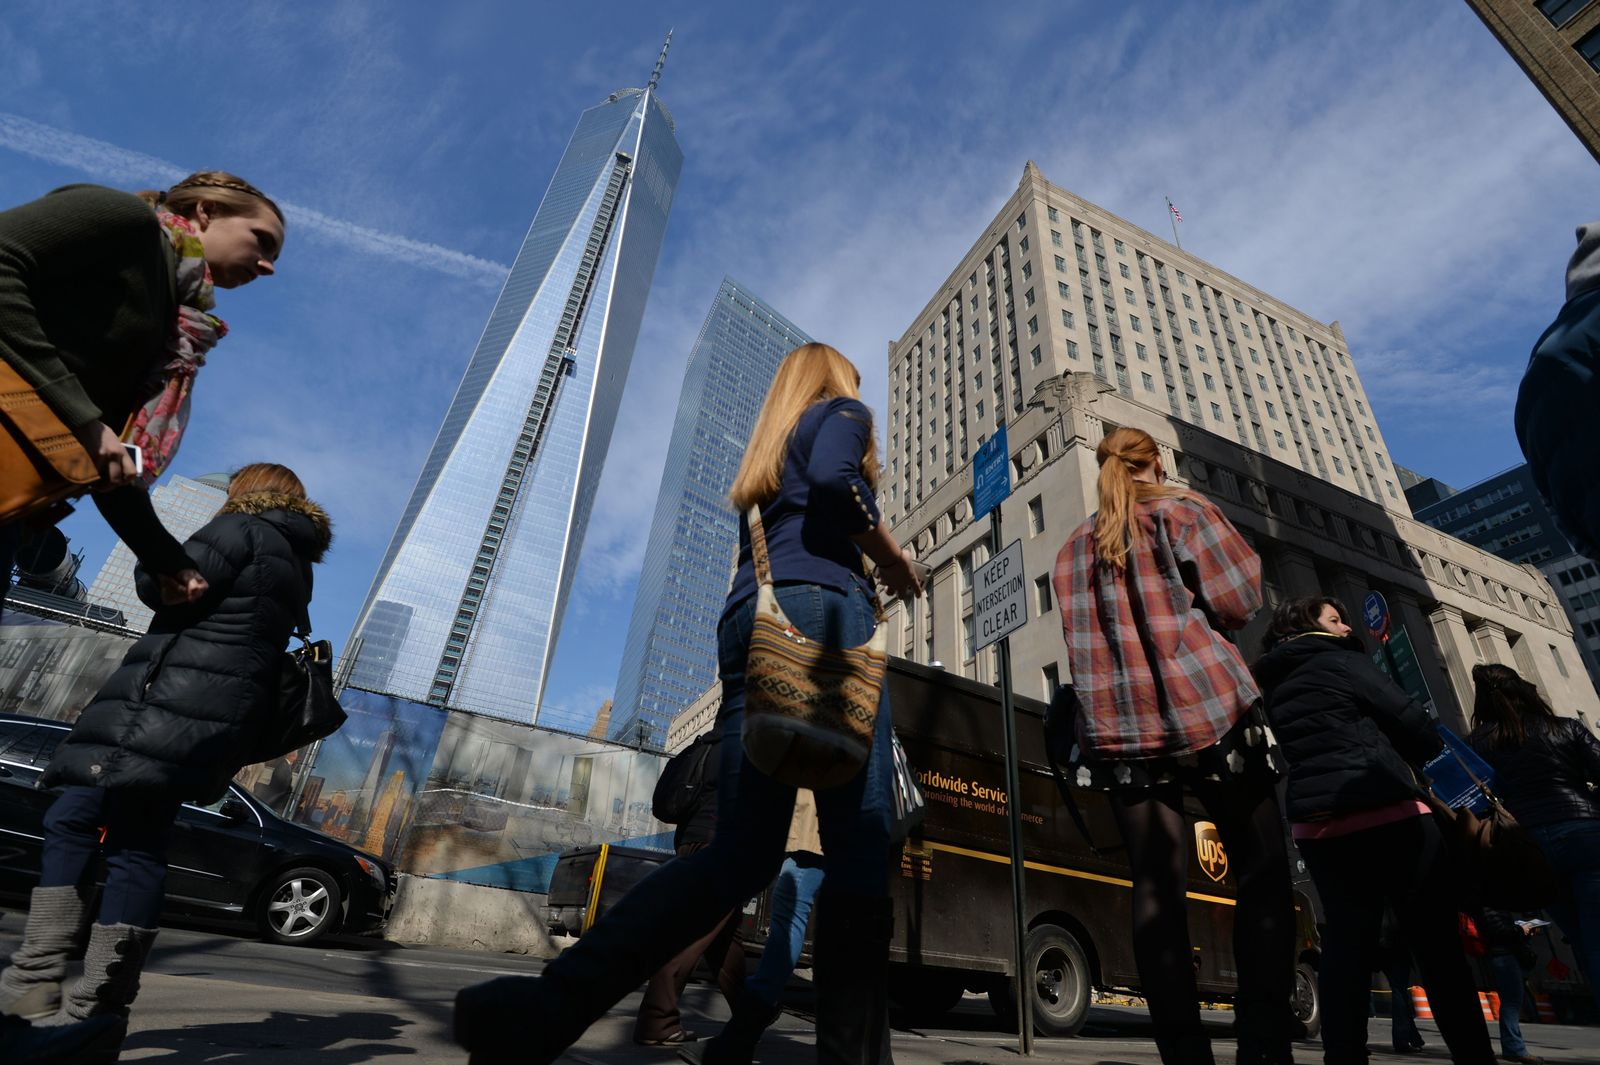 US-ARCHITECTURE-ONE-WORLD-TRADE-CENTER